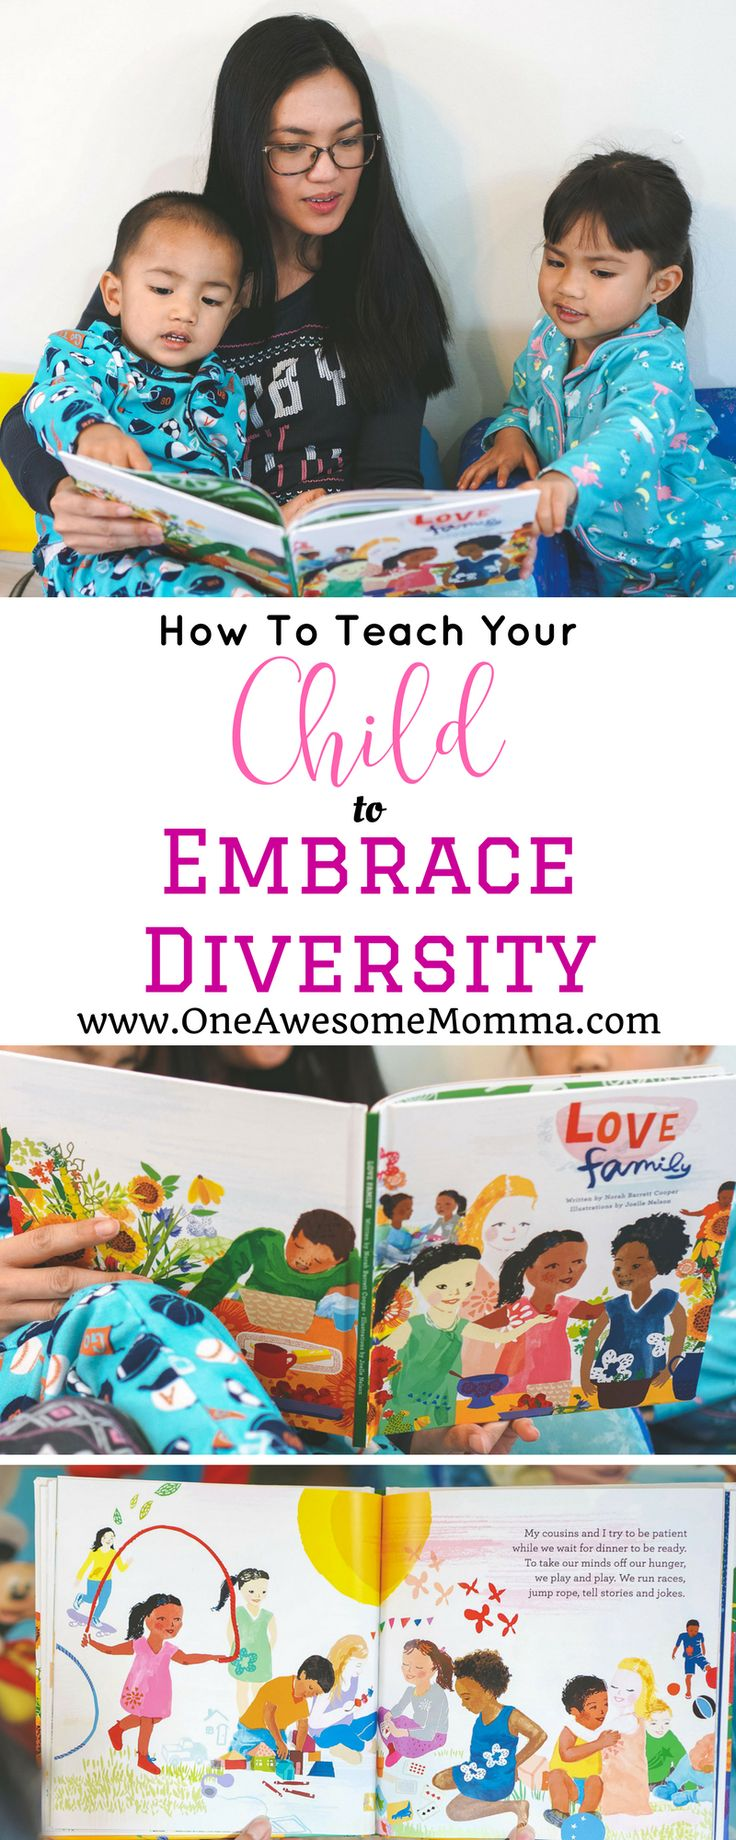 [ad] Books have a huge influence with the way kids view things. As parents, we have to choose books that are actual representations of what real life is. This personalized book, Love Family, from Loving Lion Books will absolutely teach your kids to embrace diversity. #childrensbook #learnthroughplay #diversitybooks #embracediversity | personalized books for kids | childrens books | personalized childrens books | books for kids | books for toddlers | books to read